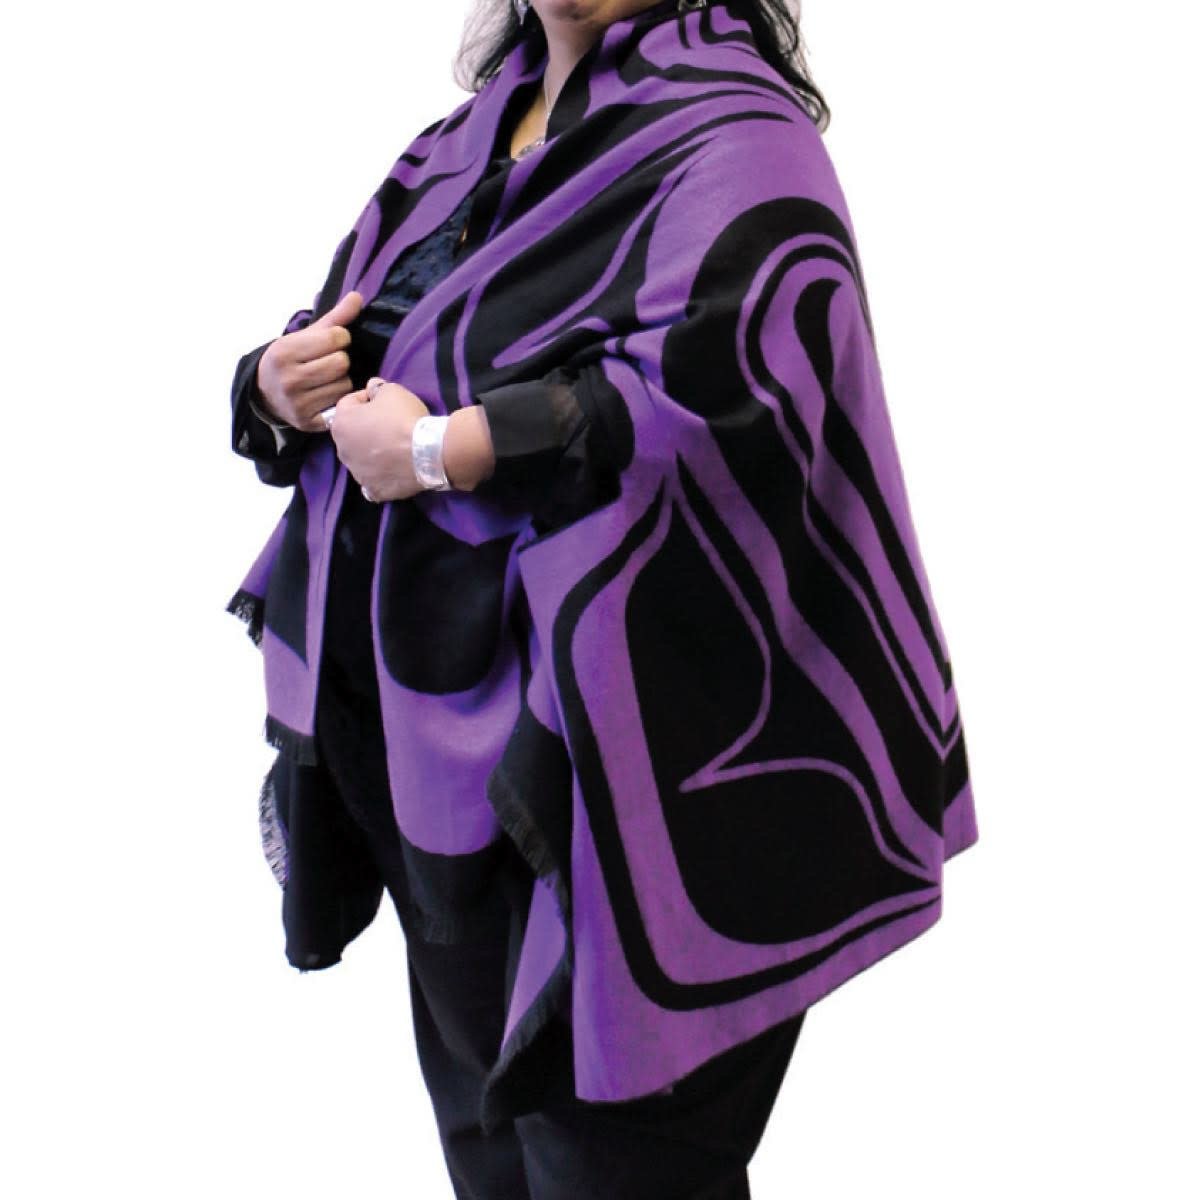 Reversible Fashion Cape- Eagle by Roger Smith-2